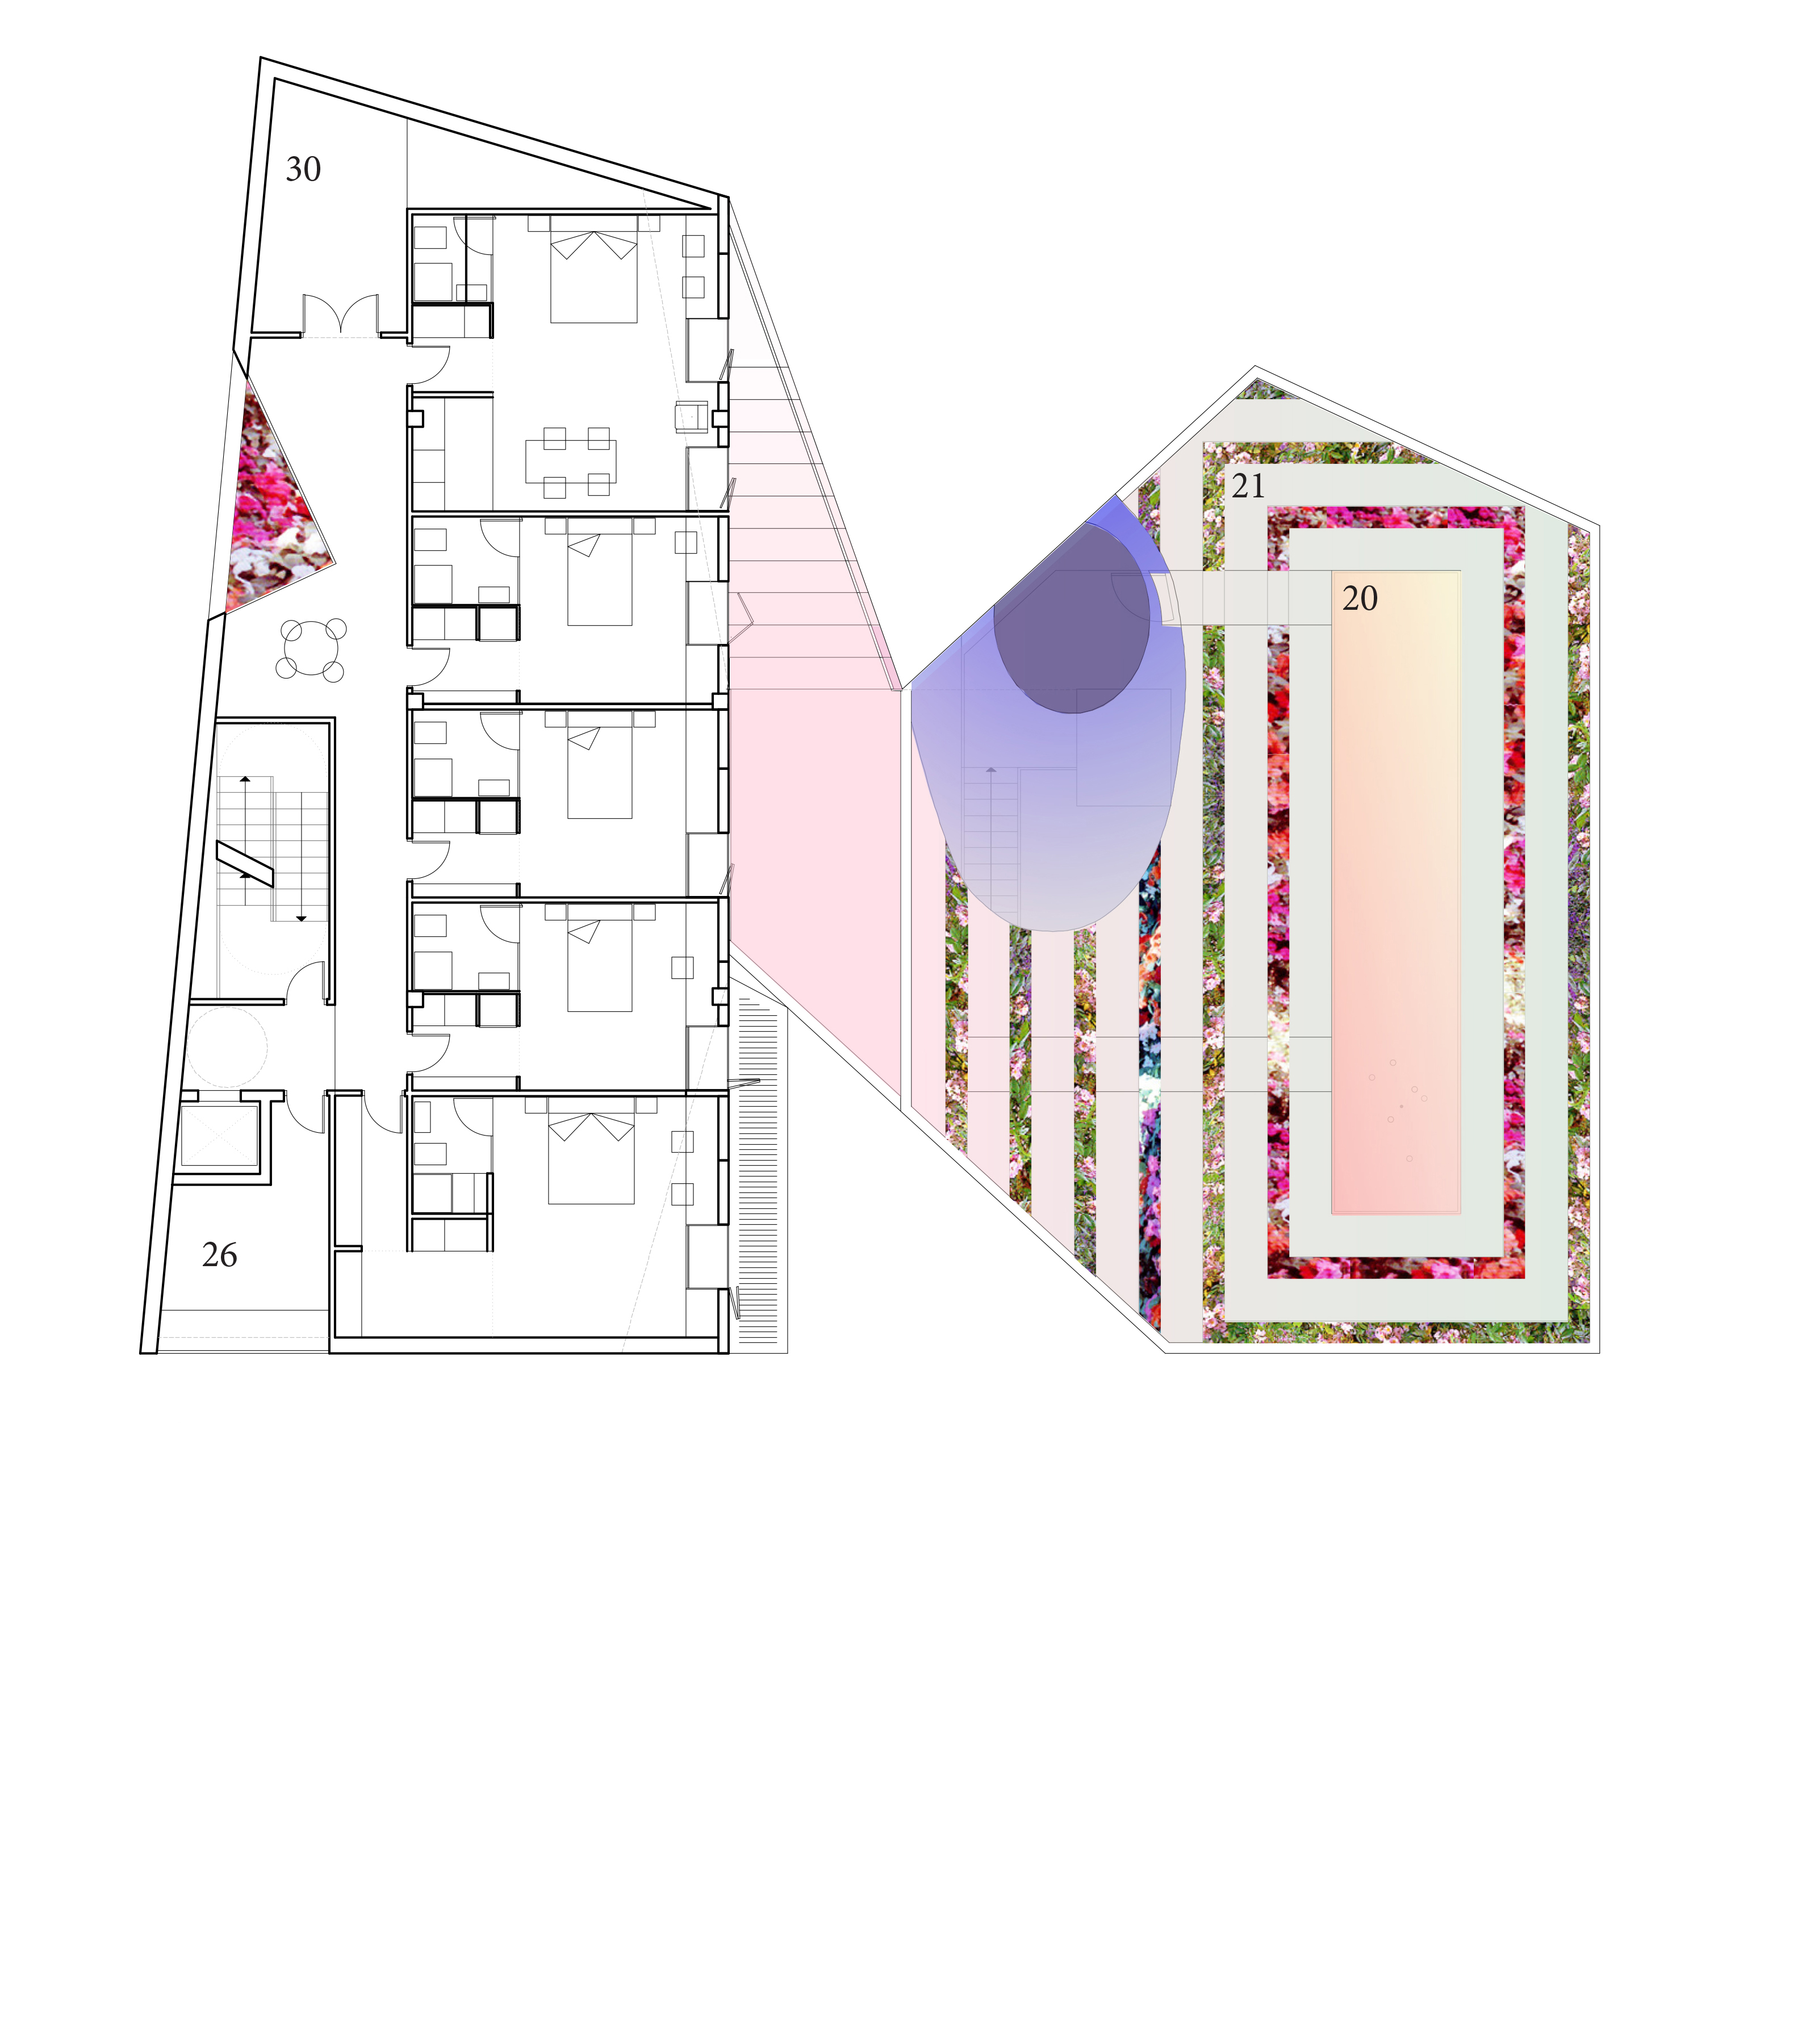 Second Floor Plan and Roof Plan